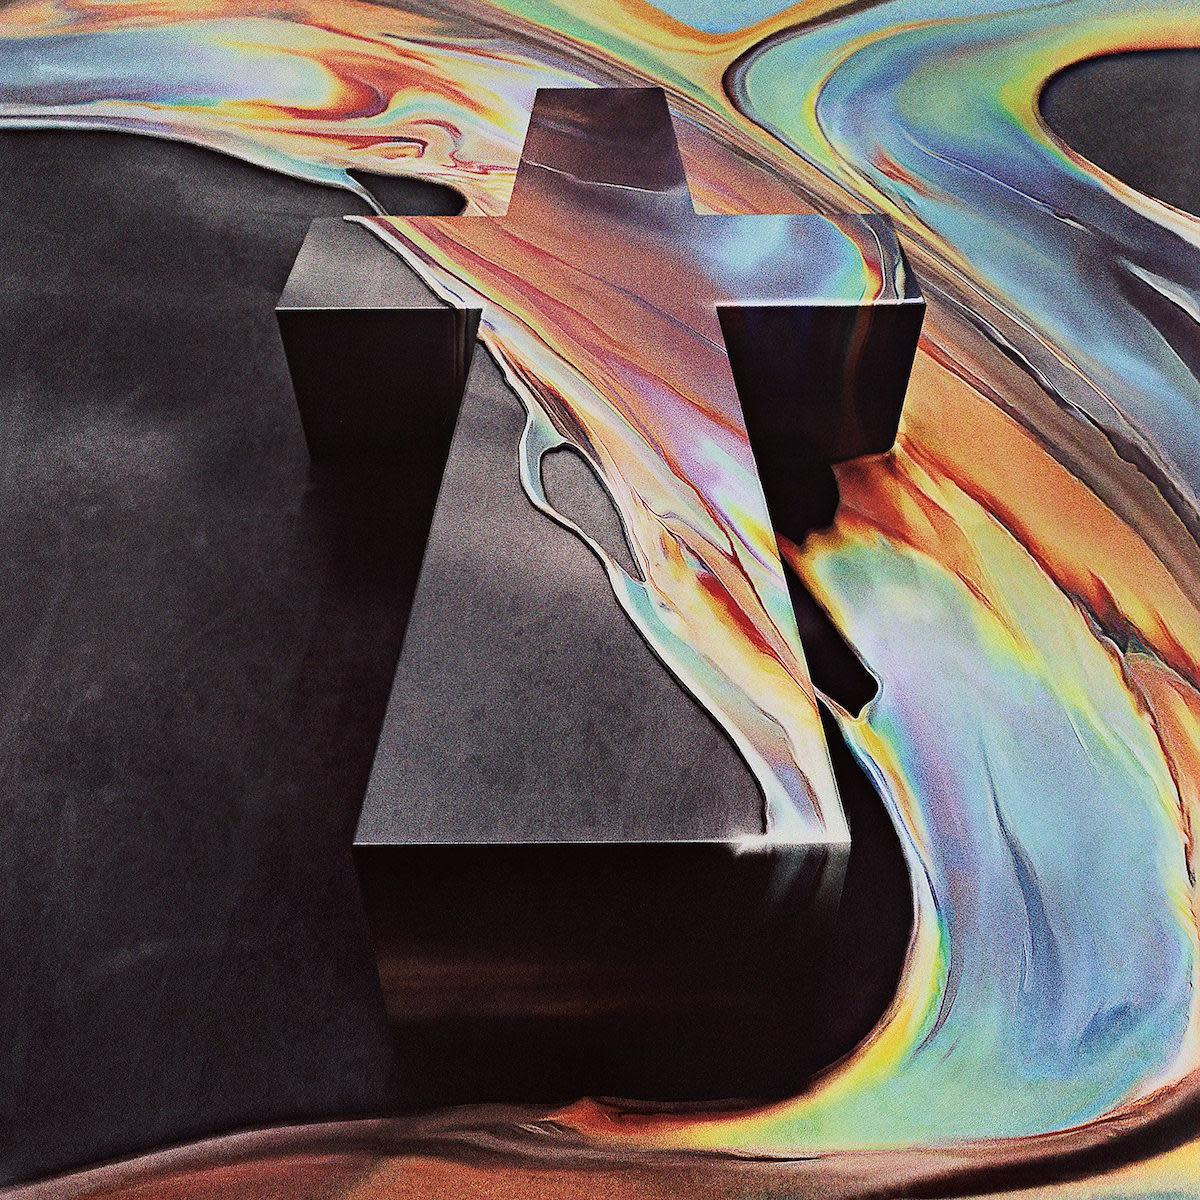 justice-woman-album-cover-inspiration-body-image-1474303782.jpg